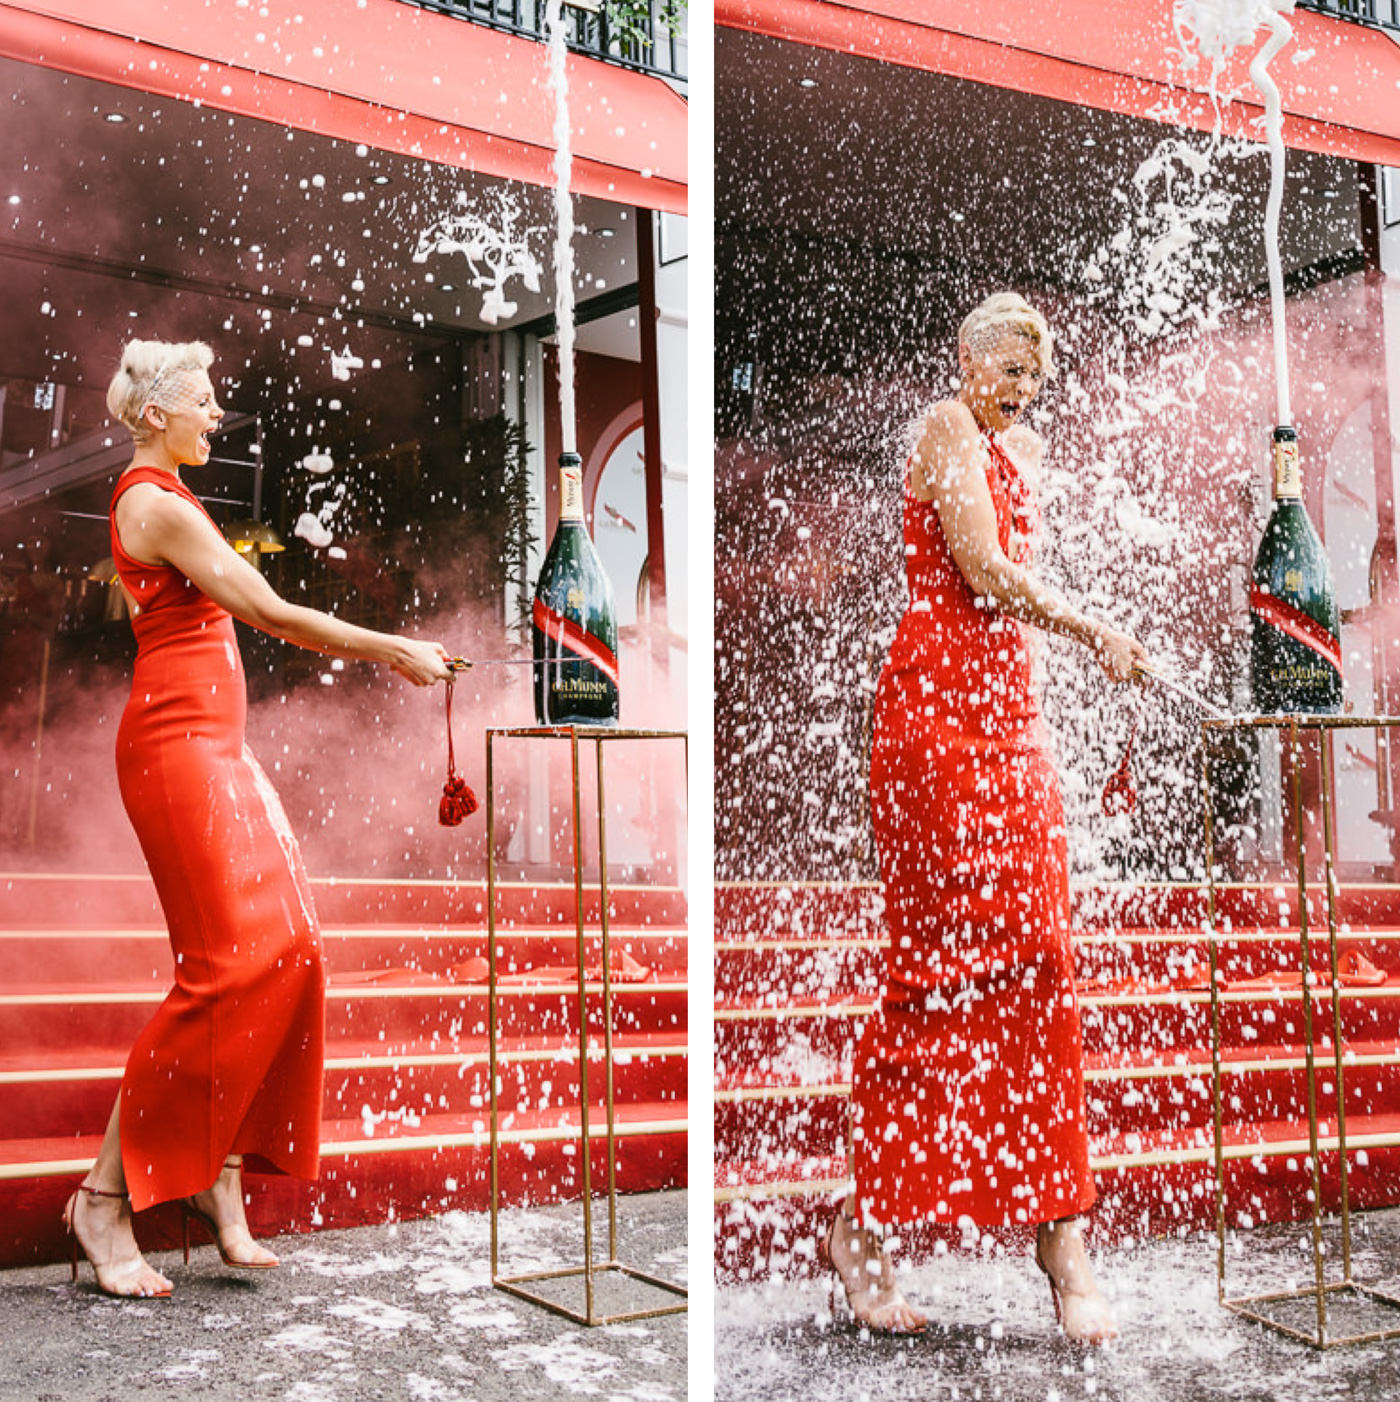 Kate Peck champagne shower at the 2019 Melbourne Cup Carnival in Flemington - Birdcage 2019